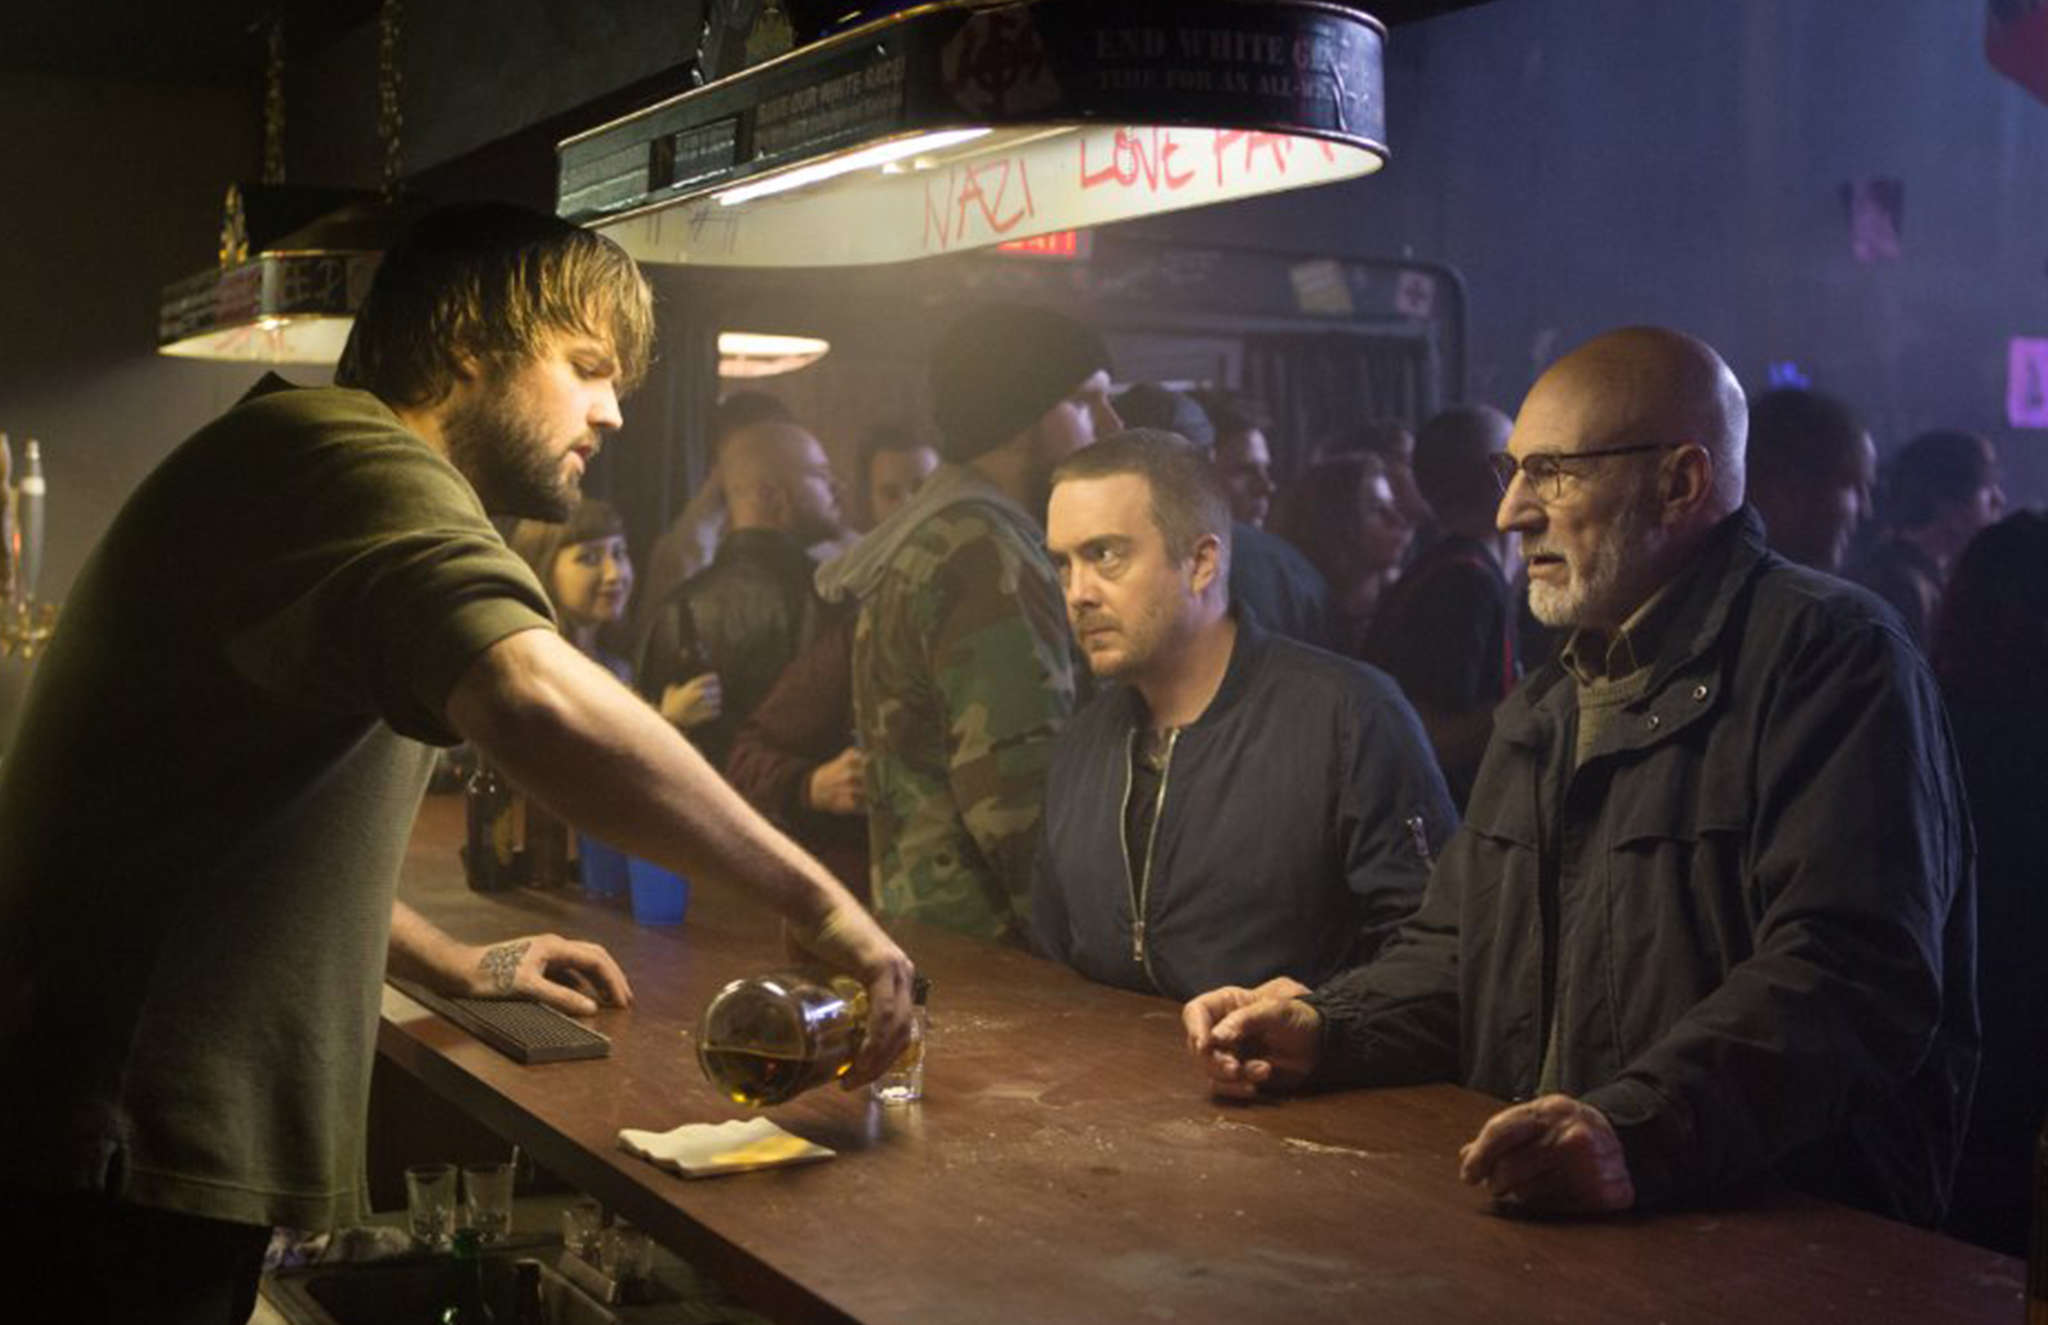 """Macon Blair (center) with Patrick Stewart in the punk rock thriller """"Green Room,"""" directed by Jeremy Saulnier. """"That was just serendipitous,"""" Saulnier says of getting Stewart to be in the film. """"It was really about him taking the leap in making a risky film happen."""""""